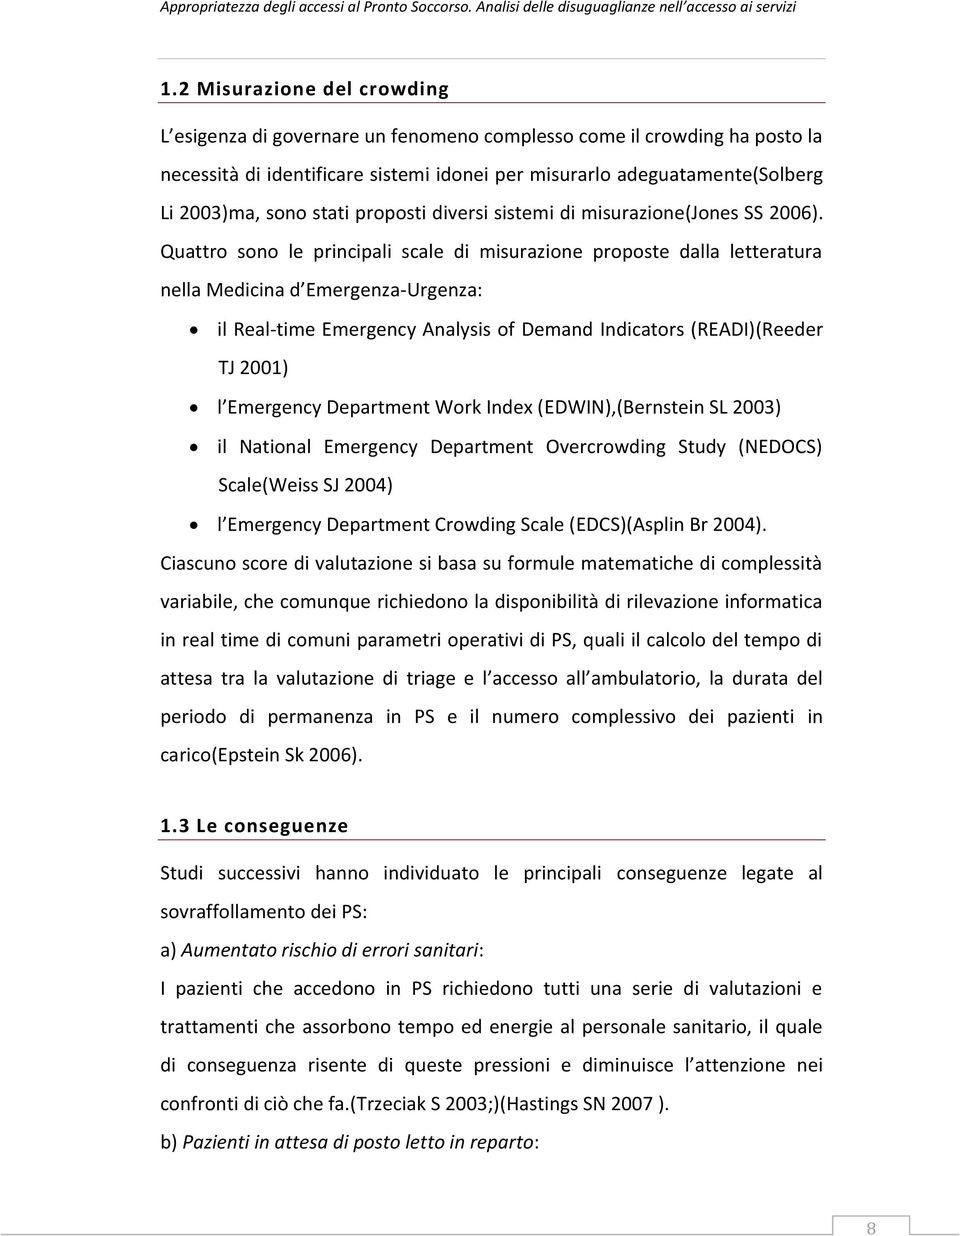 Quattro sono le principali scale di misurazione proposte dalla letteratura nella Medicina d Emergenza-Urgenza: il Real-time Emergency Analysis of Demand Indicators (READI)(Reeder TJ 2001) l Emergency